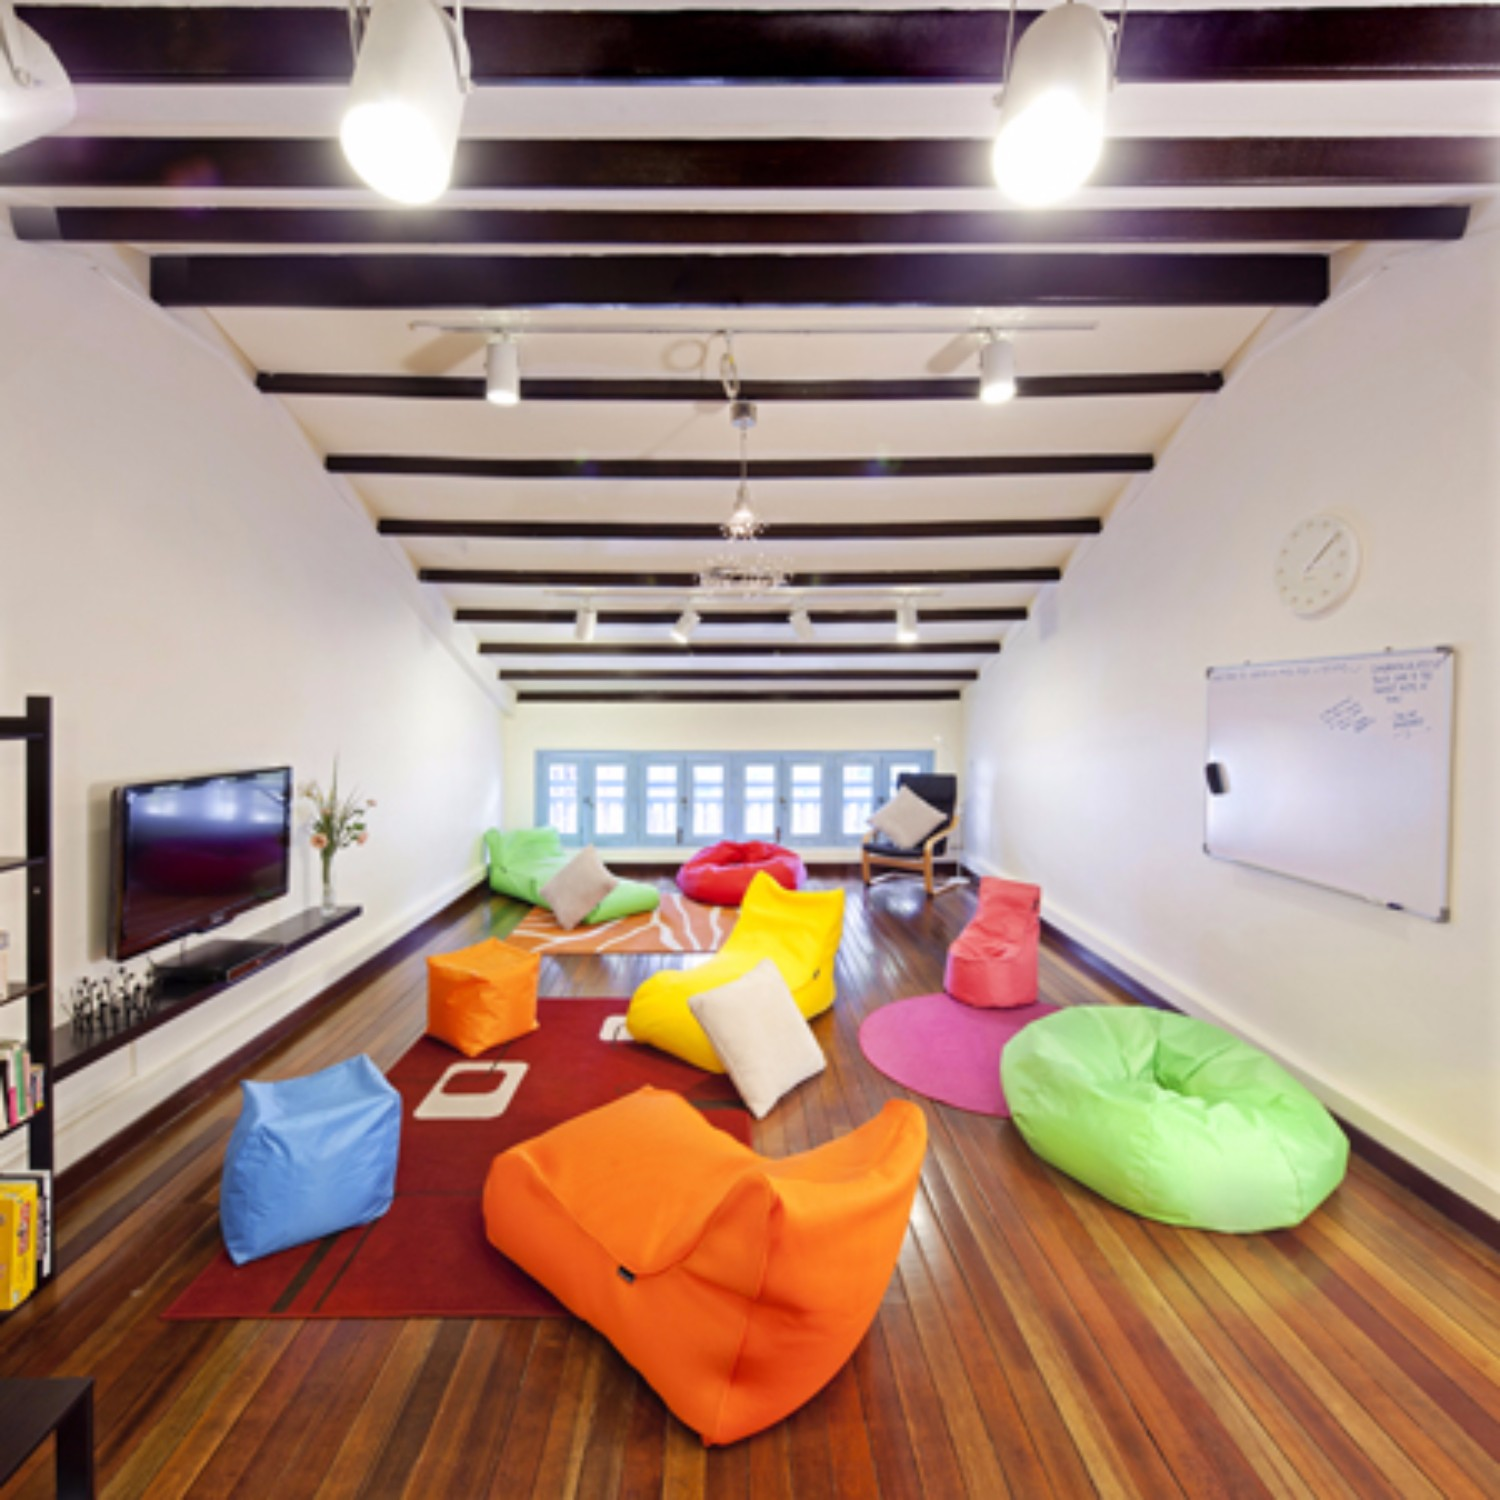 39 Attic Living Rooms That Really Are The Best: 14th November 2012 07:51